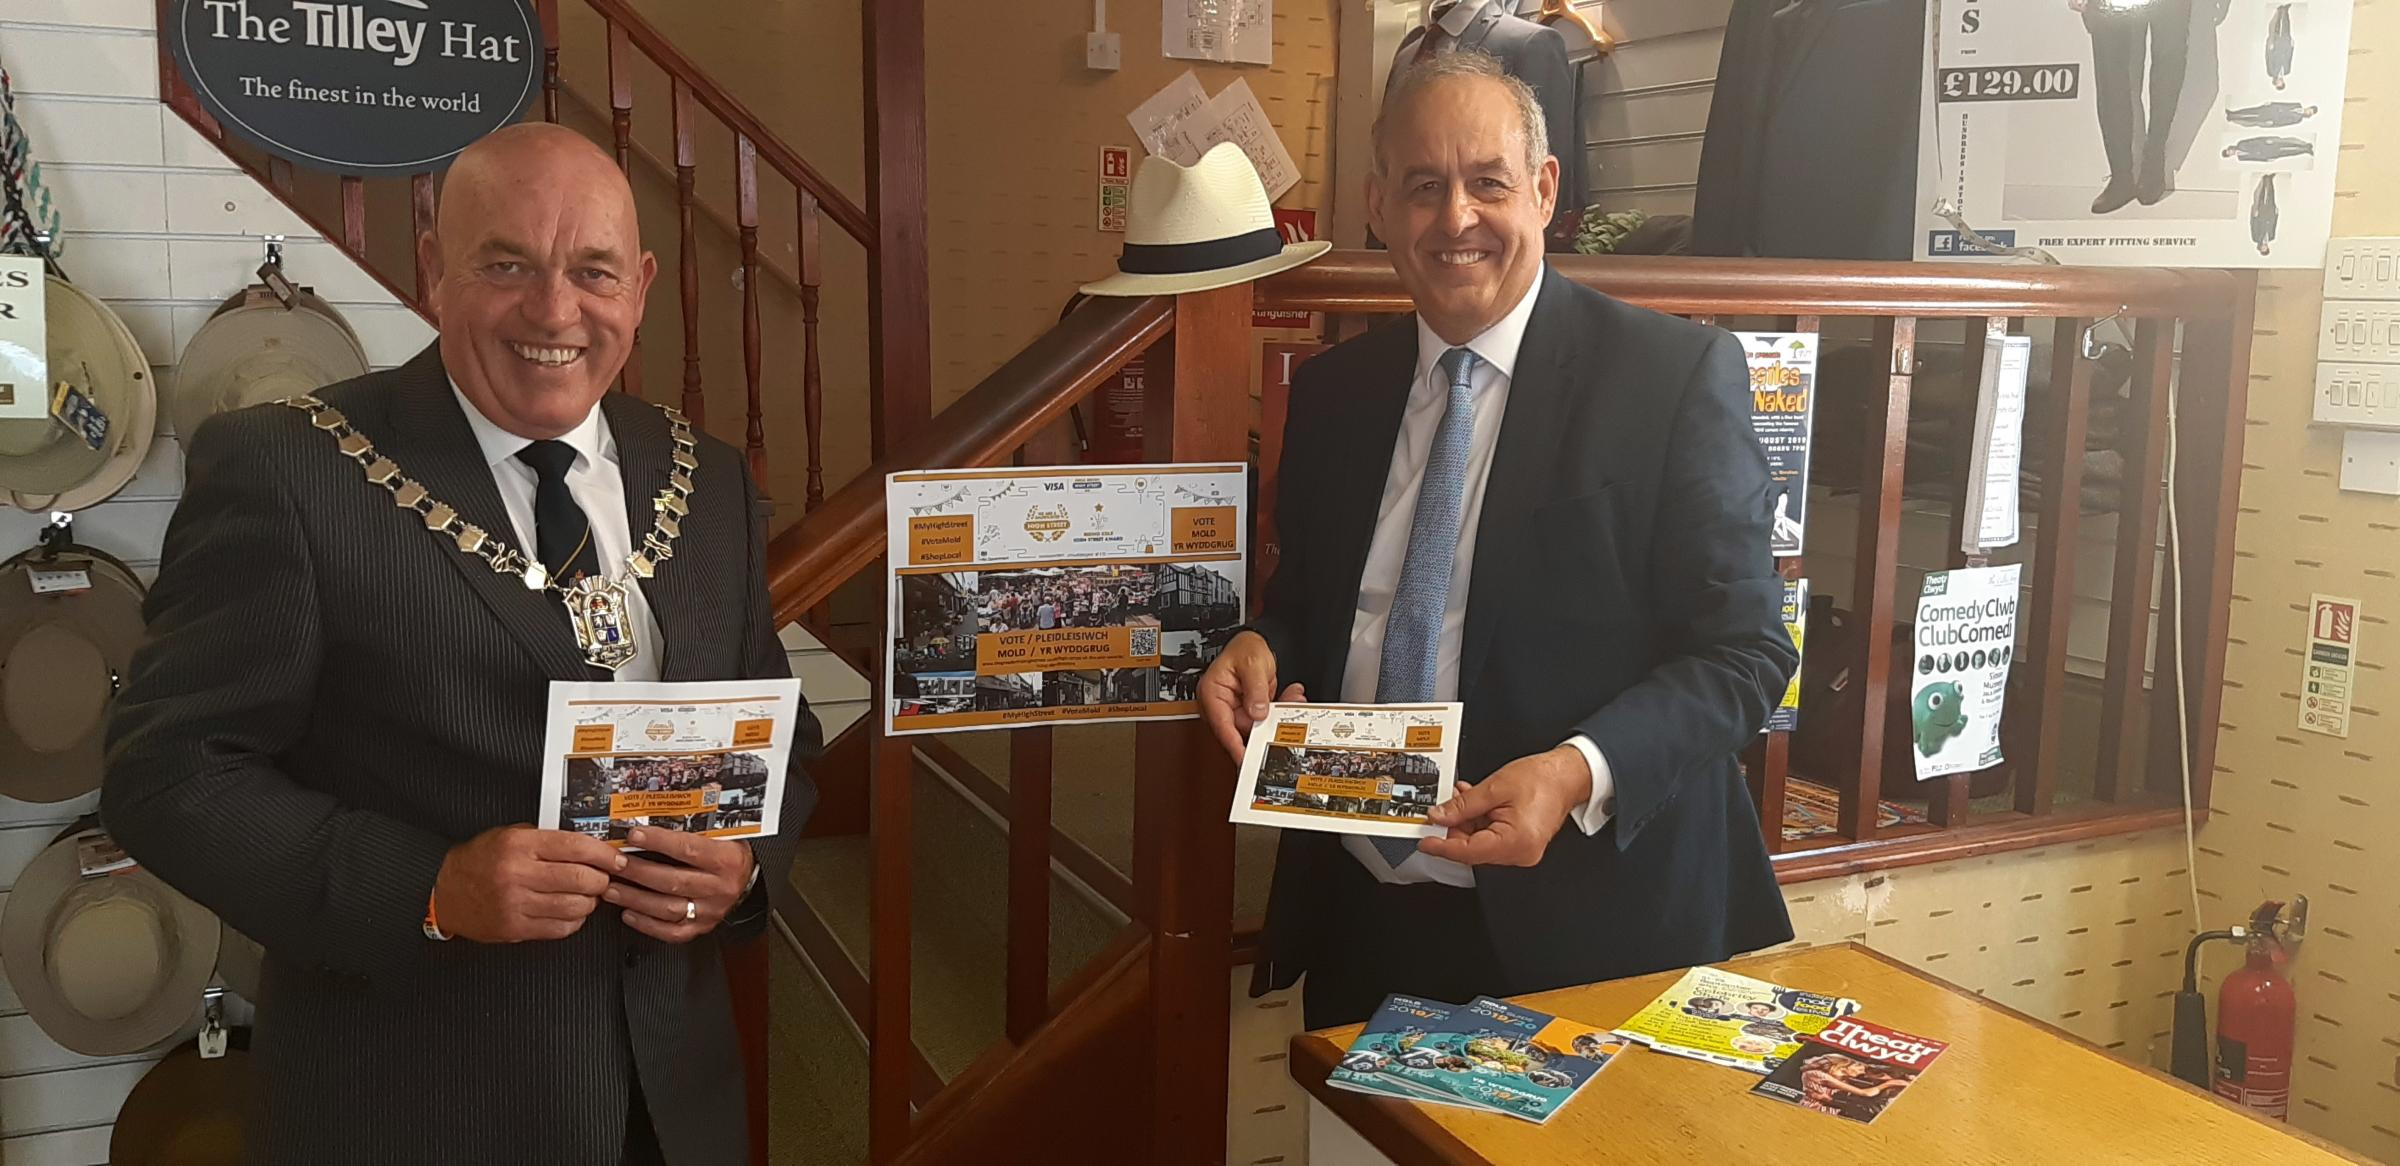 Mayor and Delyn MP visit businesses after Mold shortlisted for high street award